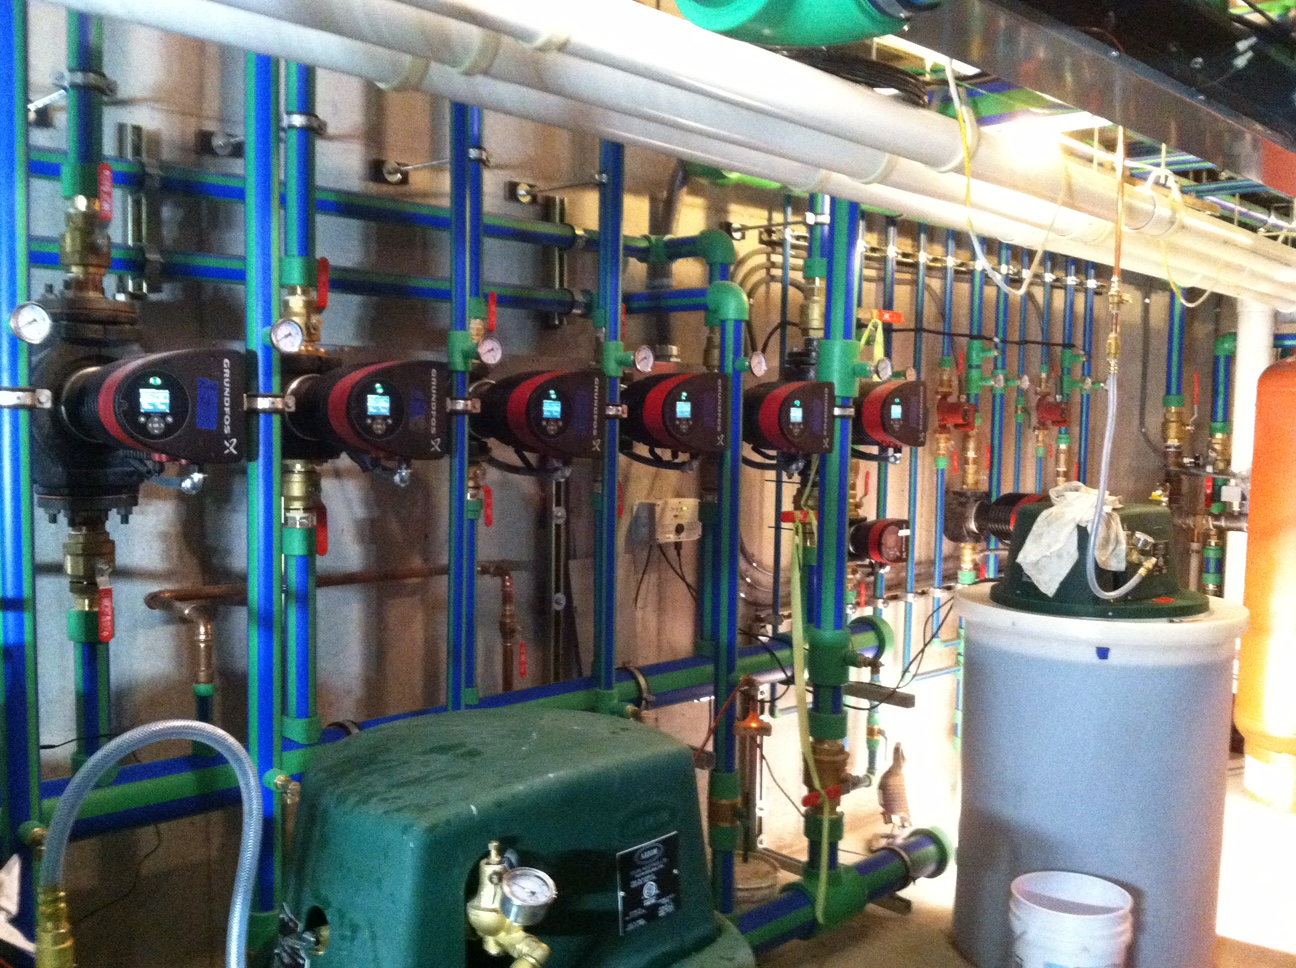 Residential Mechanical Room w/ Hydronic Piping